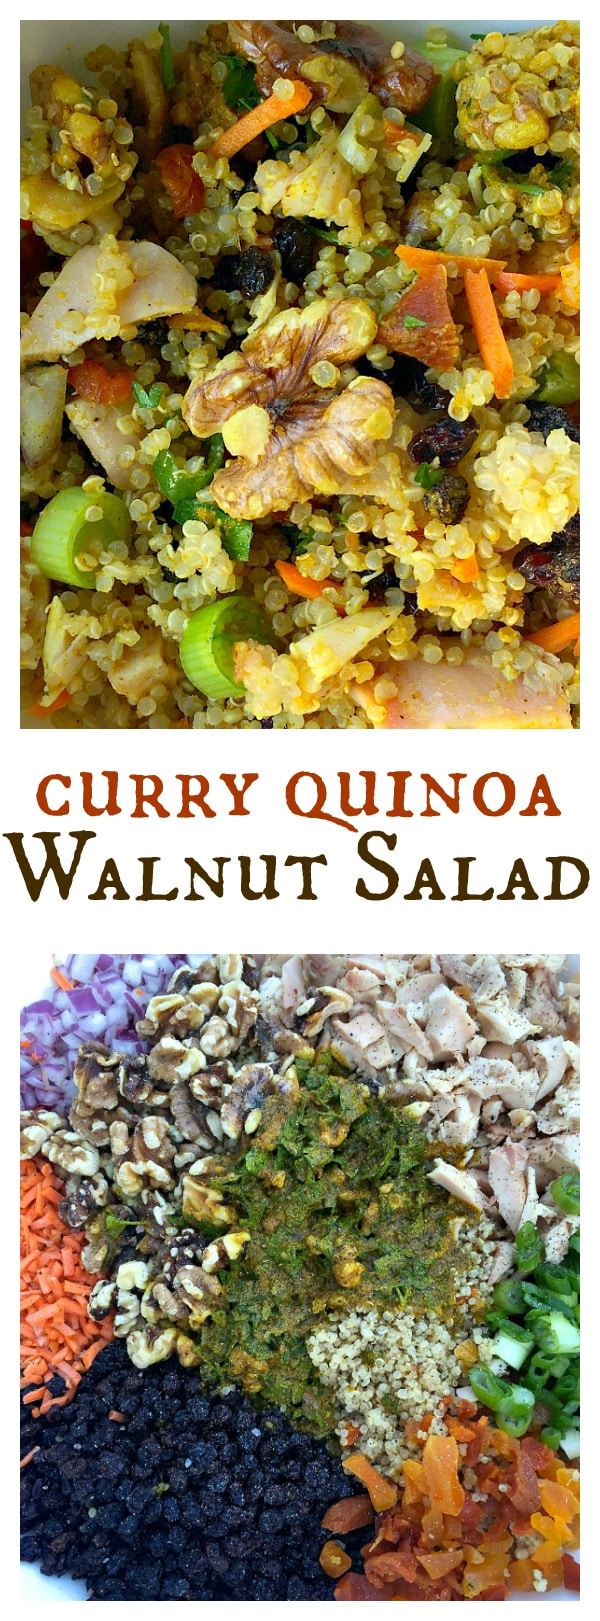 Curry Quinoa Walnut Salad